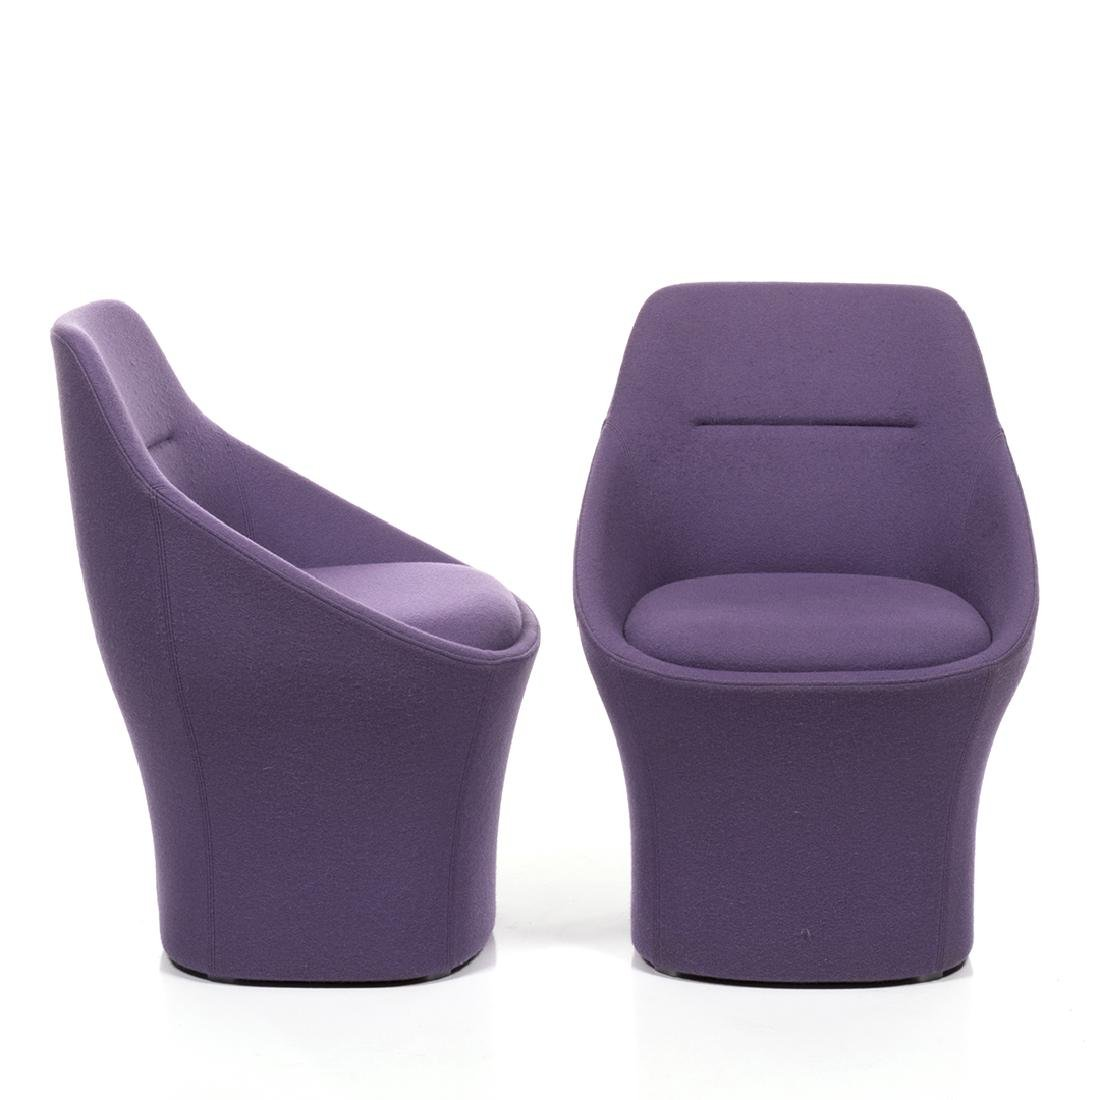 Christophe Pillet Ezy Chairs (2) - 2